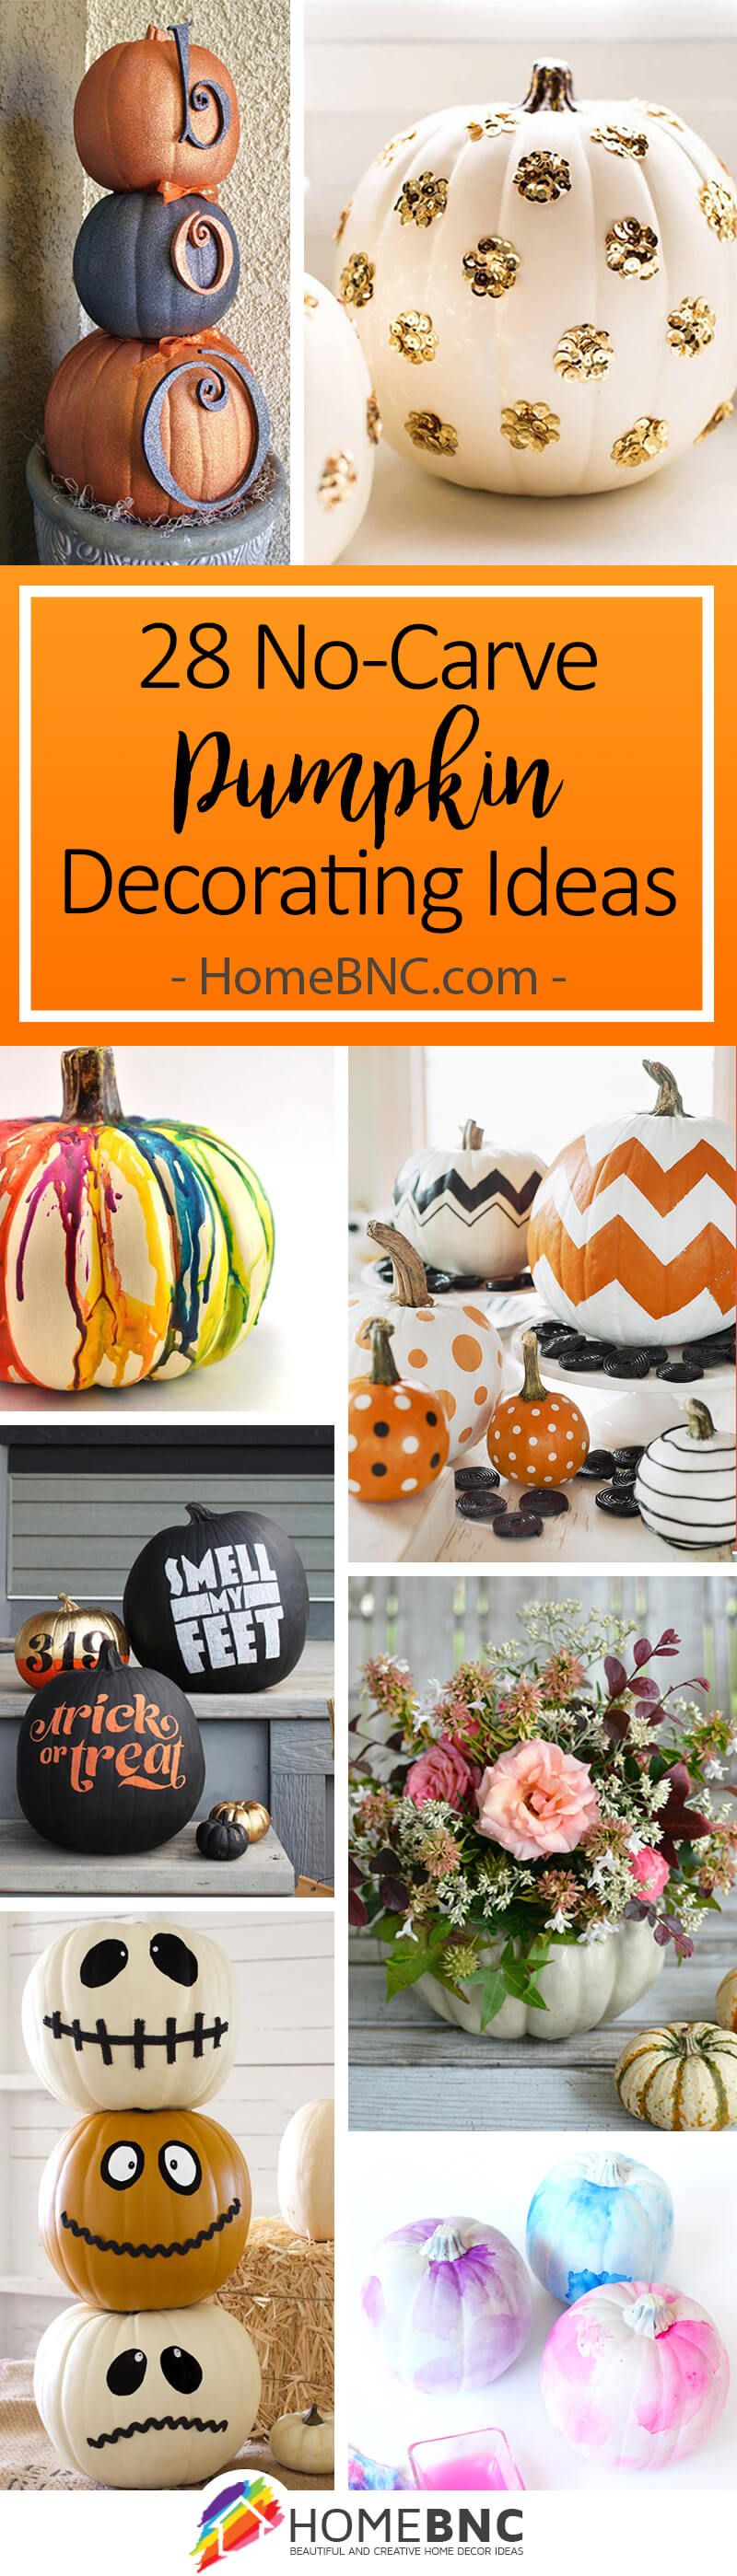 And fashion magic halloween pumpkins carving and decorating ideas - 28 Amazing No Carve Pumpkin Decorating Ideas For Crafters Of All Ages